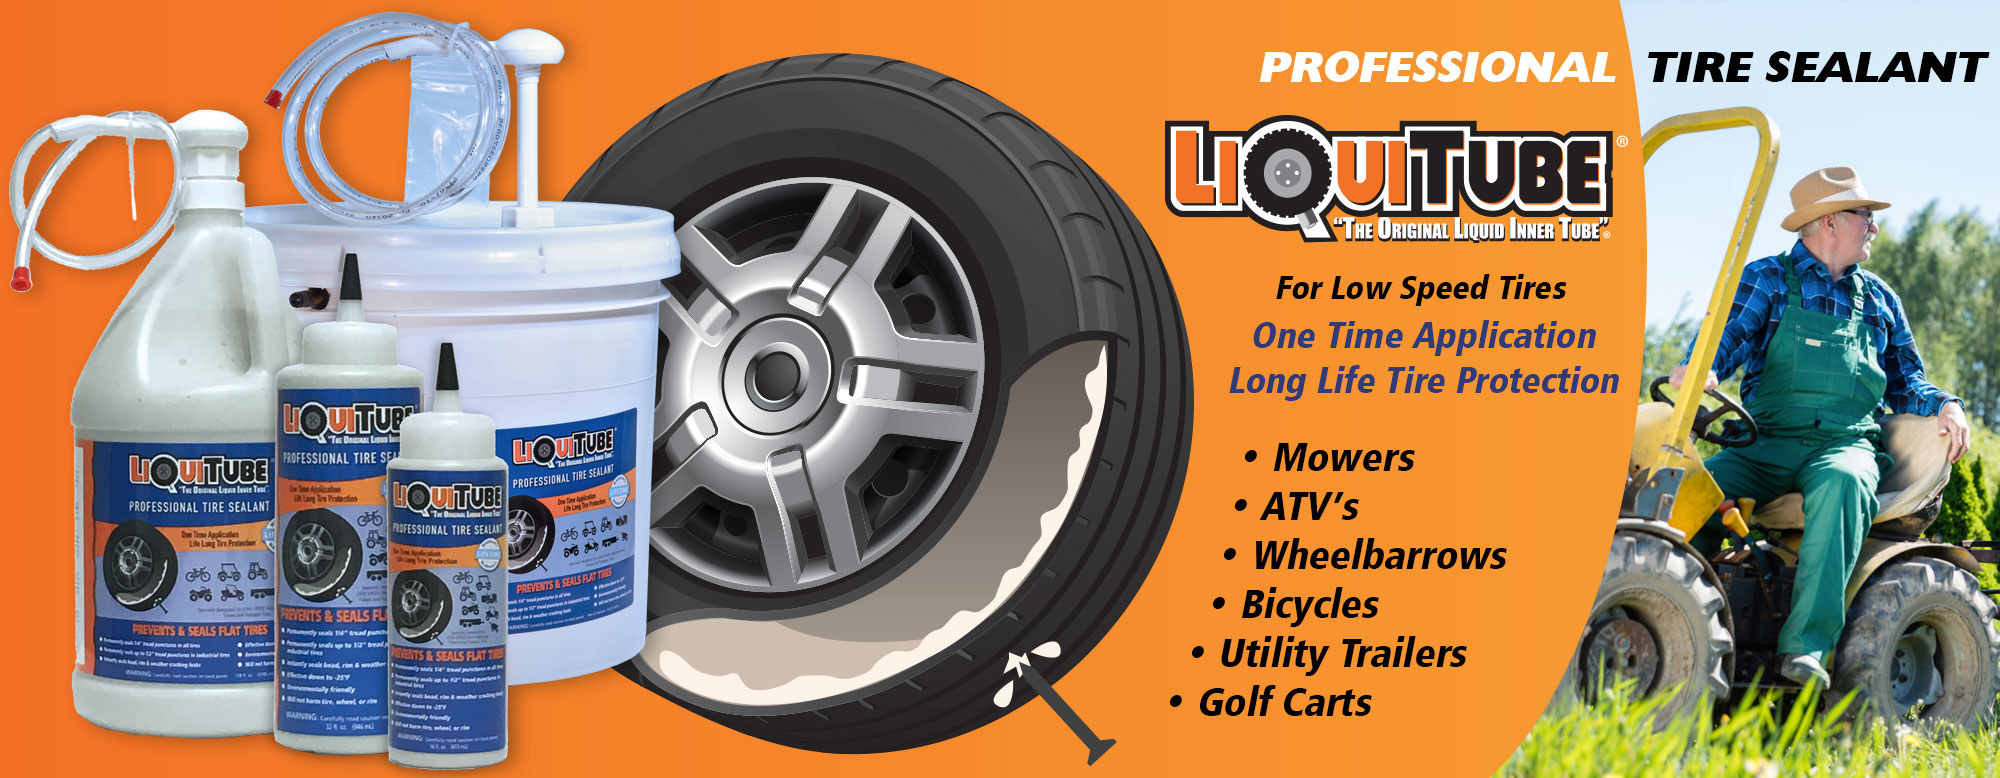 LiquiTube Tire Sealant